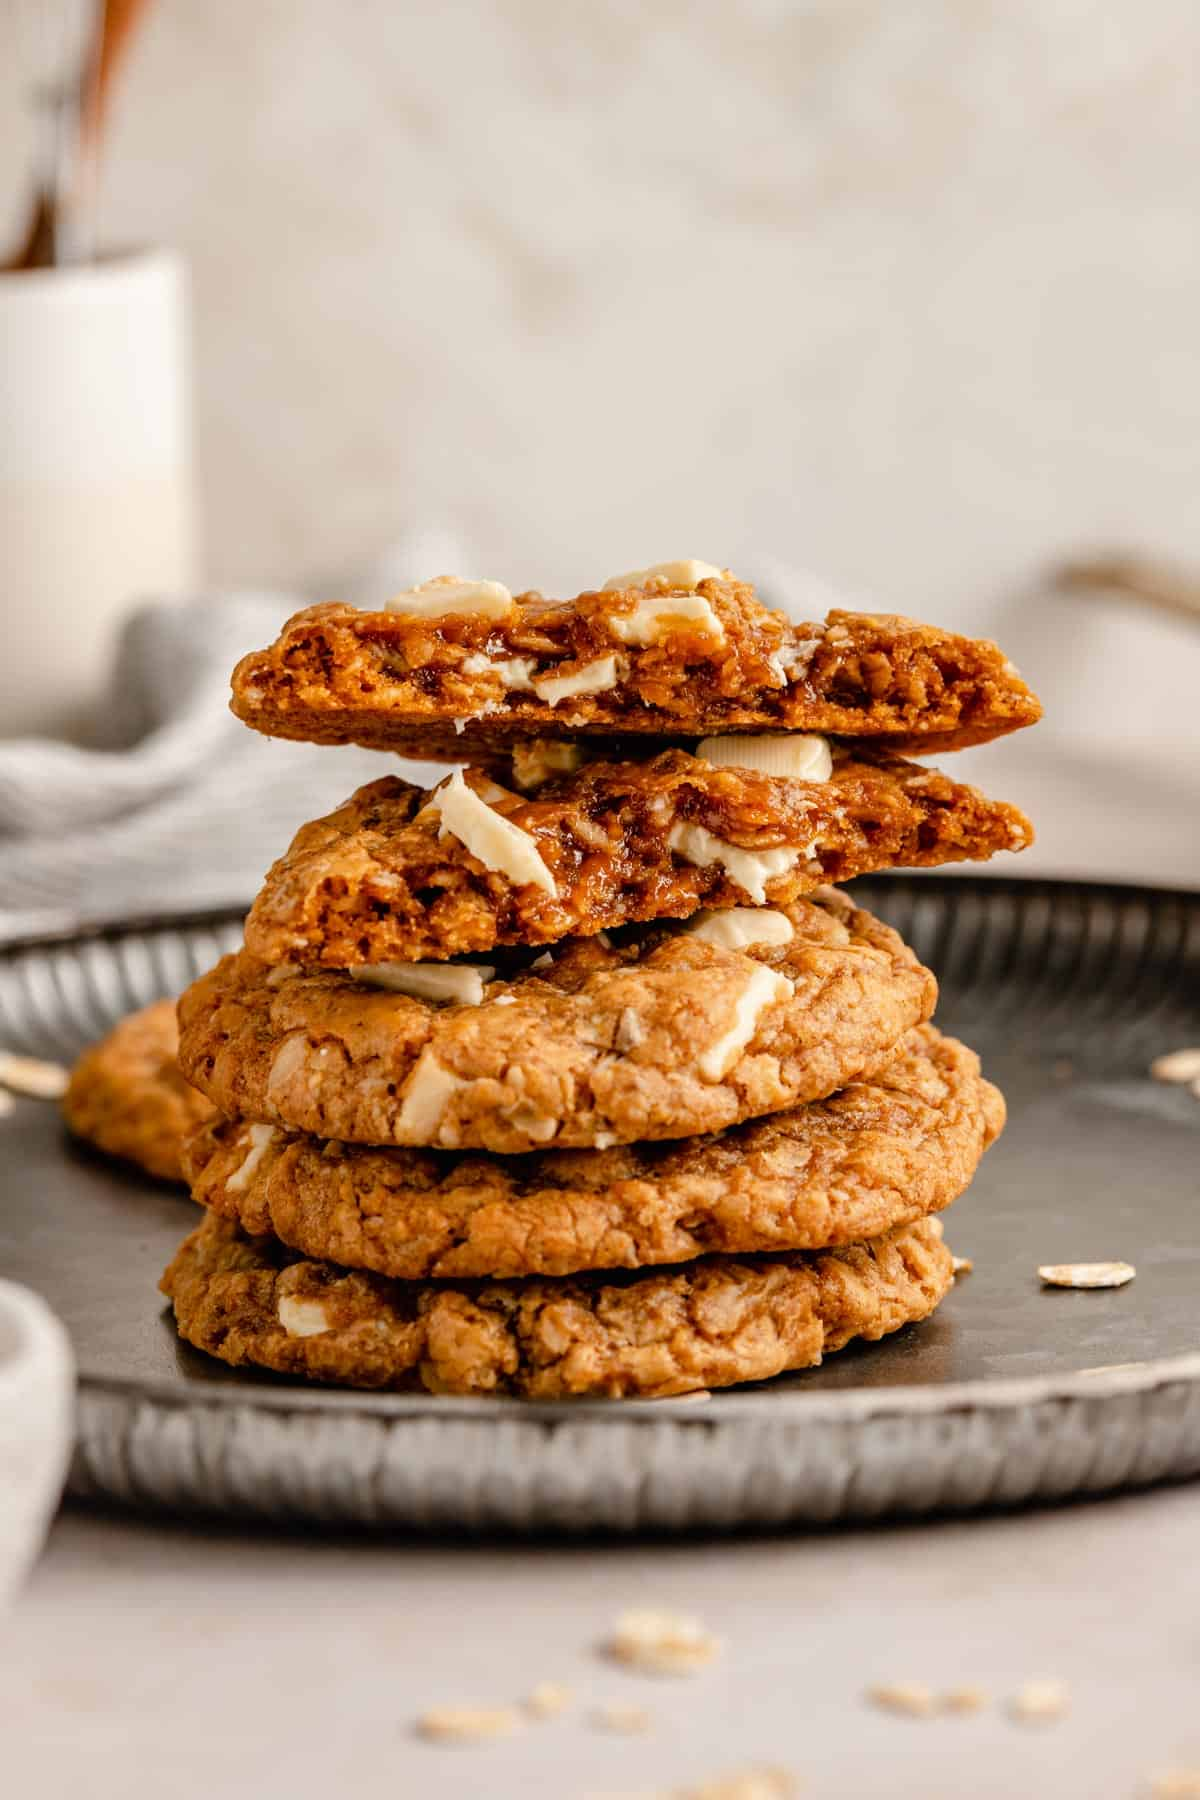 Biscoff cookies in a stack on a plate with one broken in half showing gooey insides